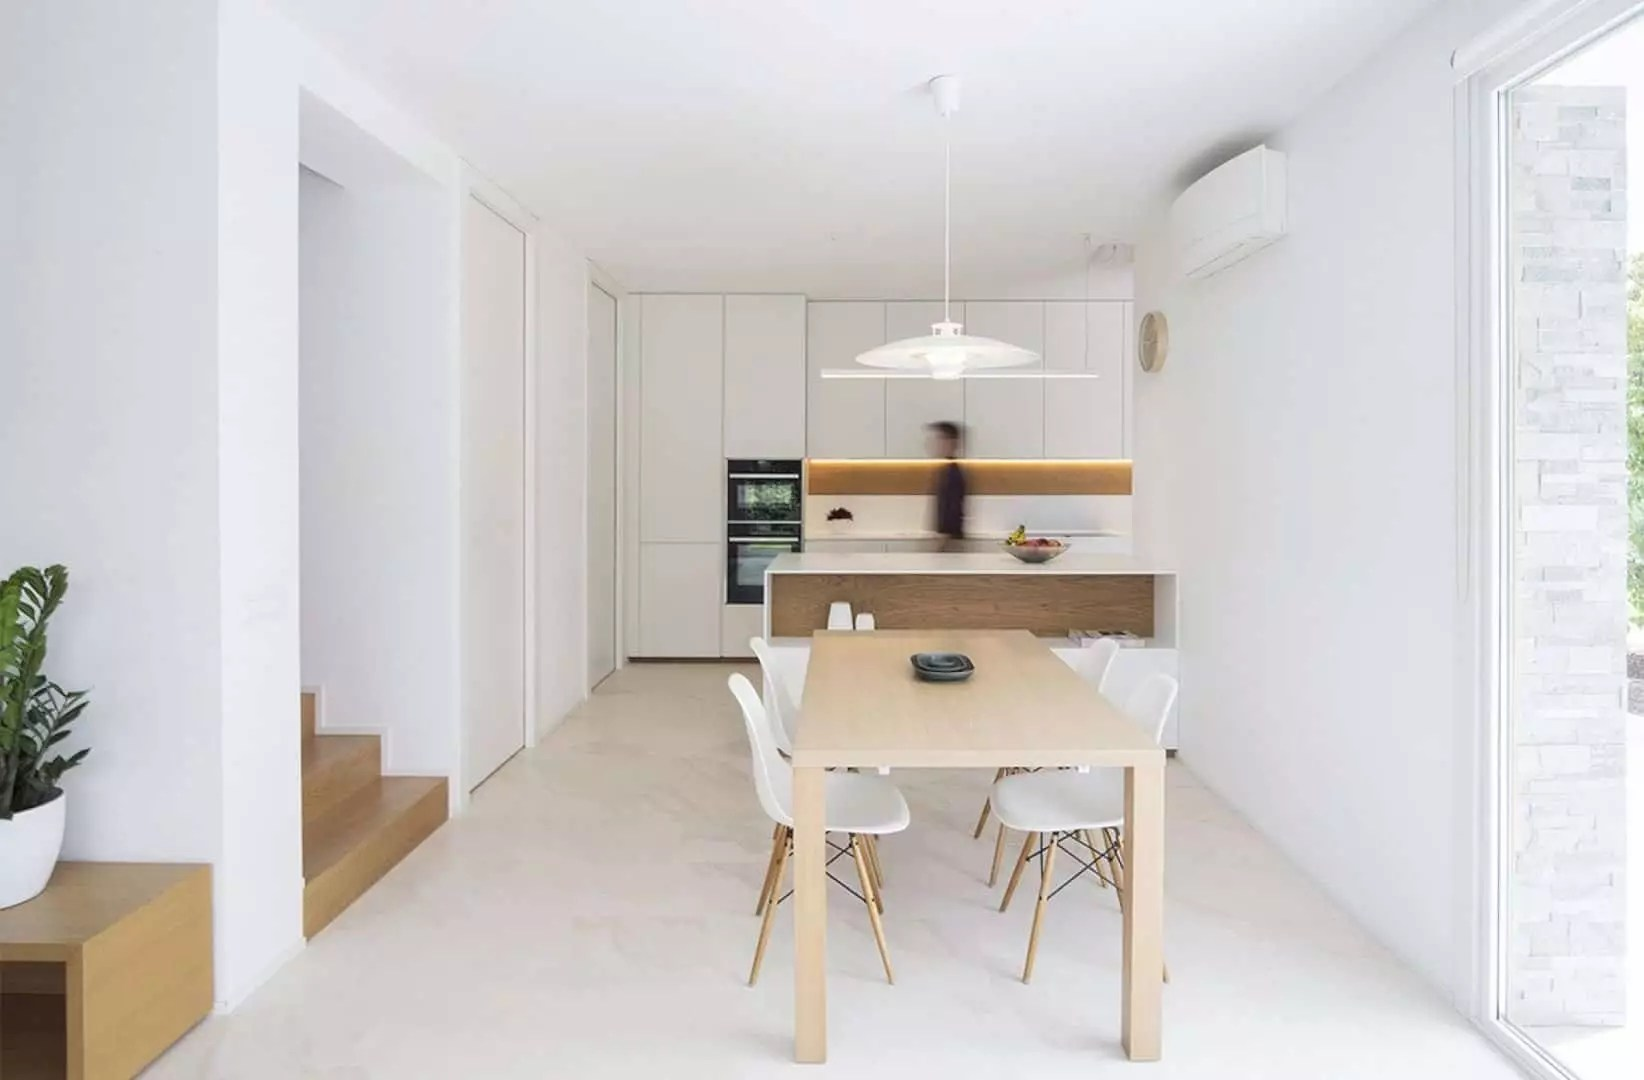 House MV: Small Project of A House with Modern Interior and Outdoor Living Area